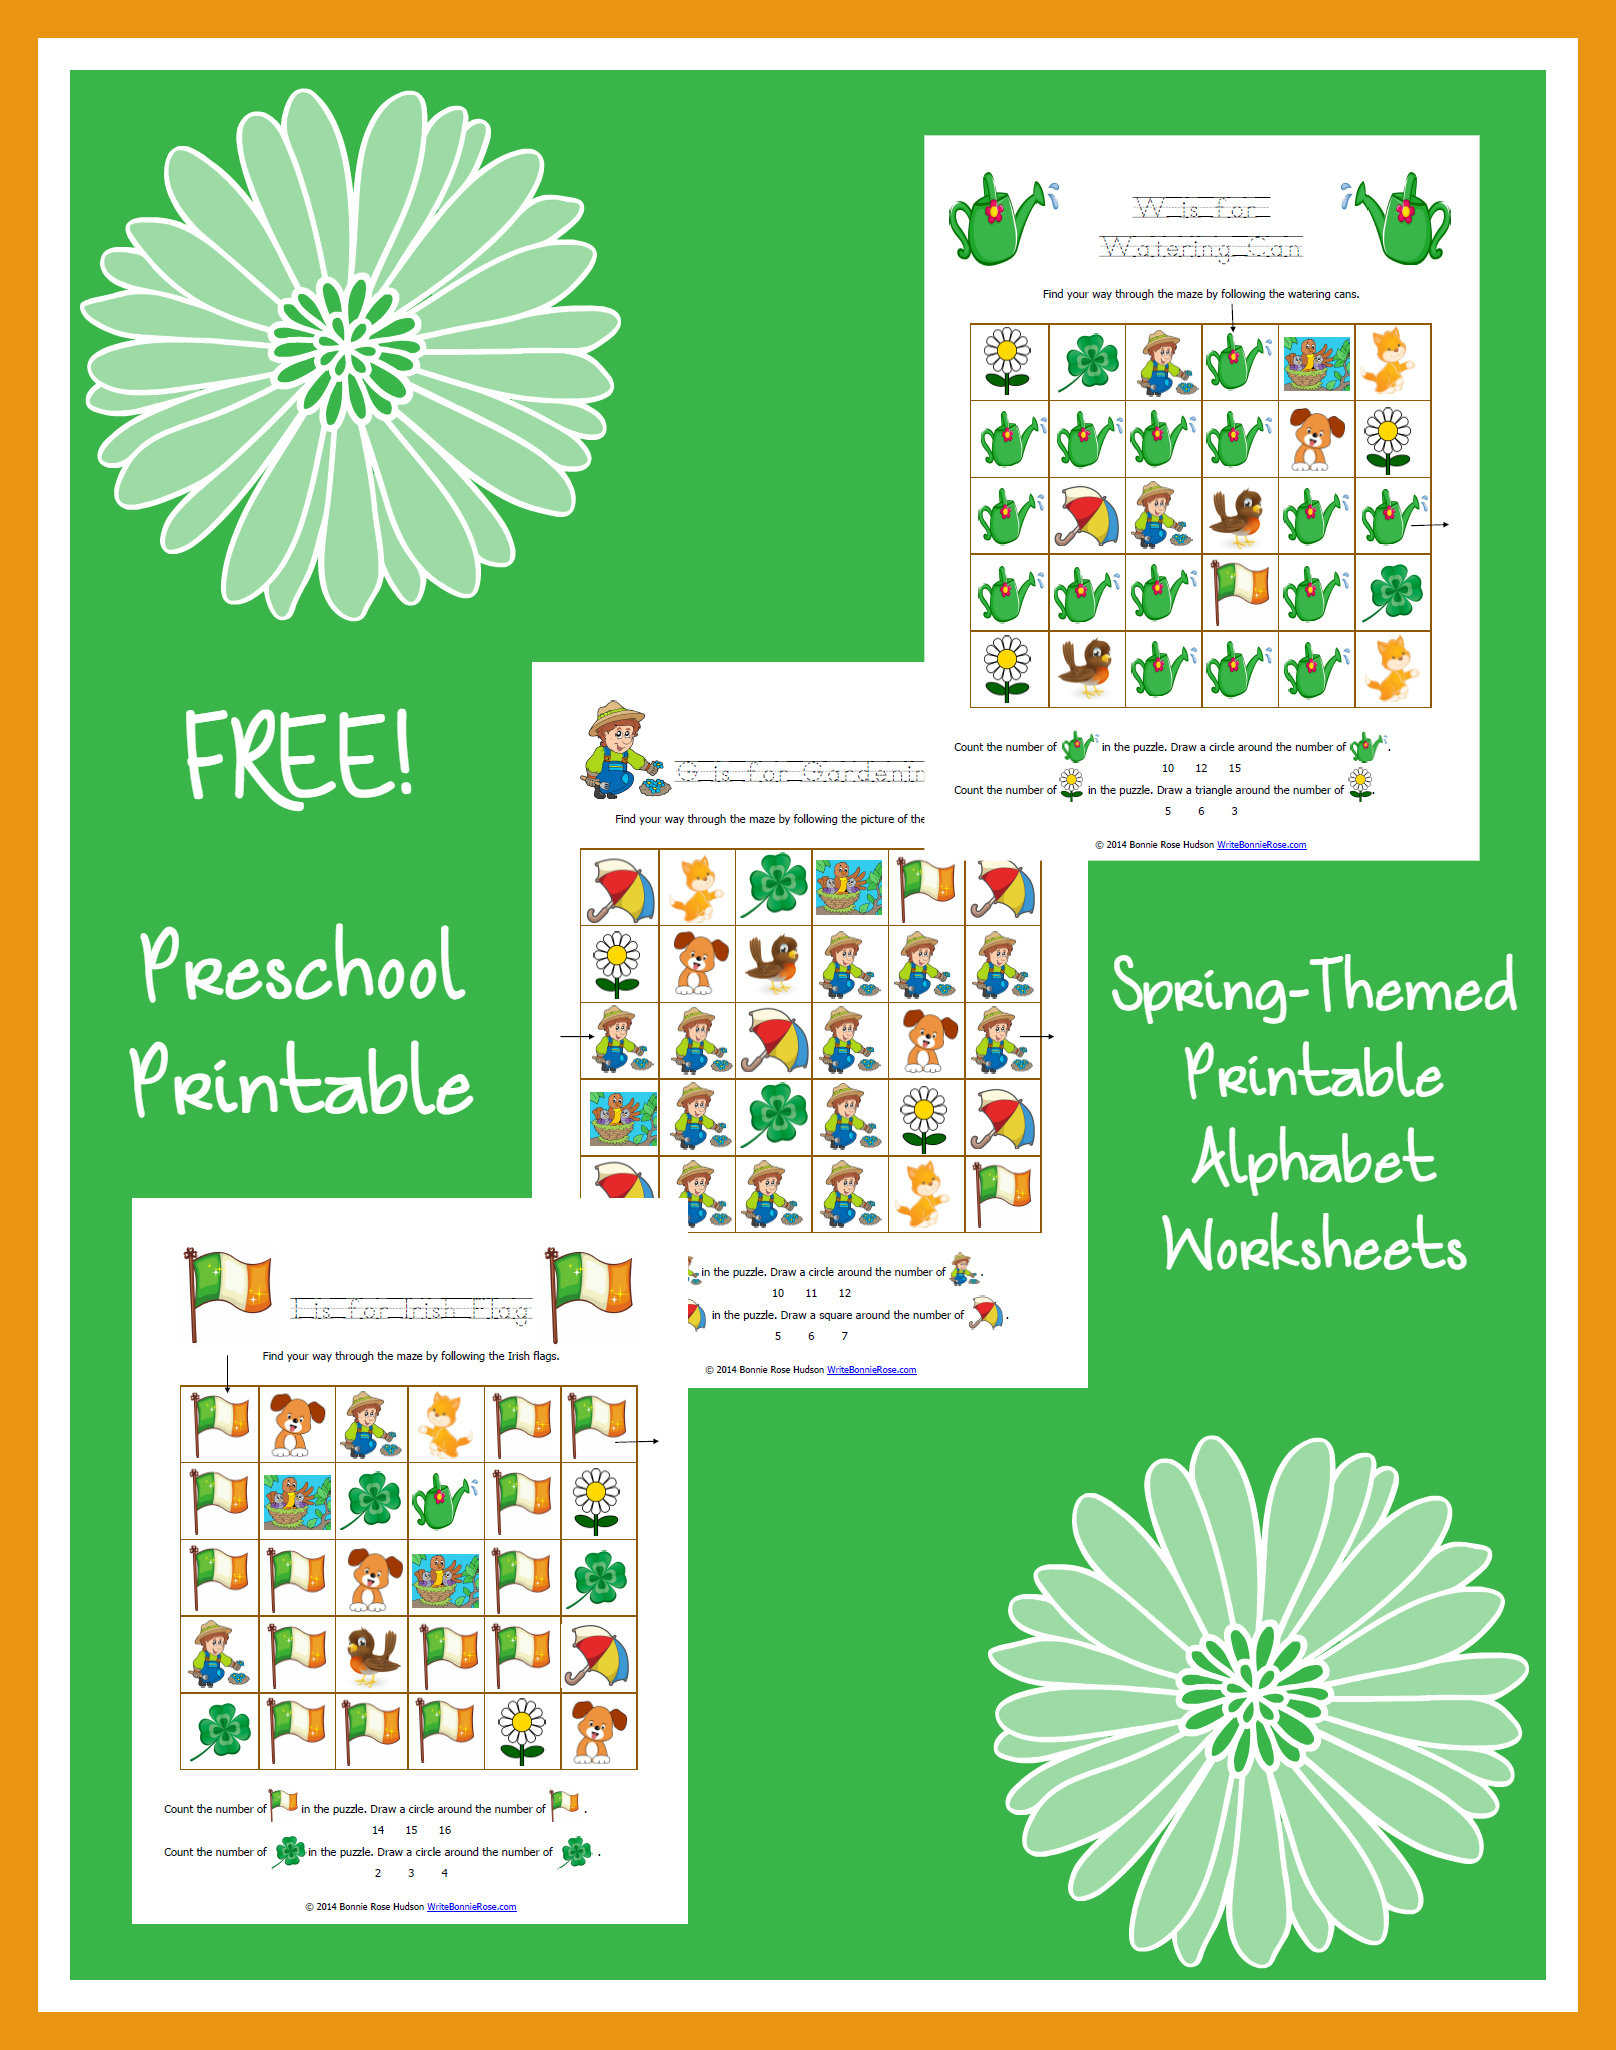 FREE Spring-Themed Printable Alphabet Worksheets for Preschool